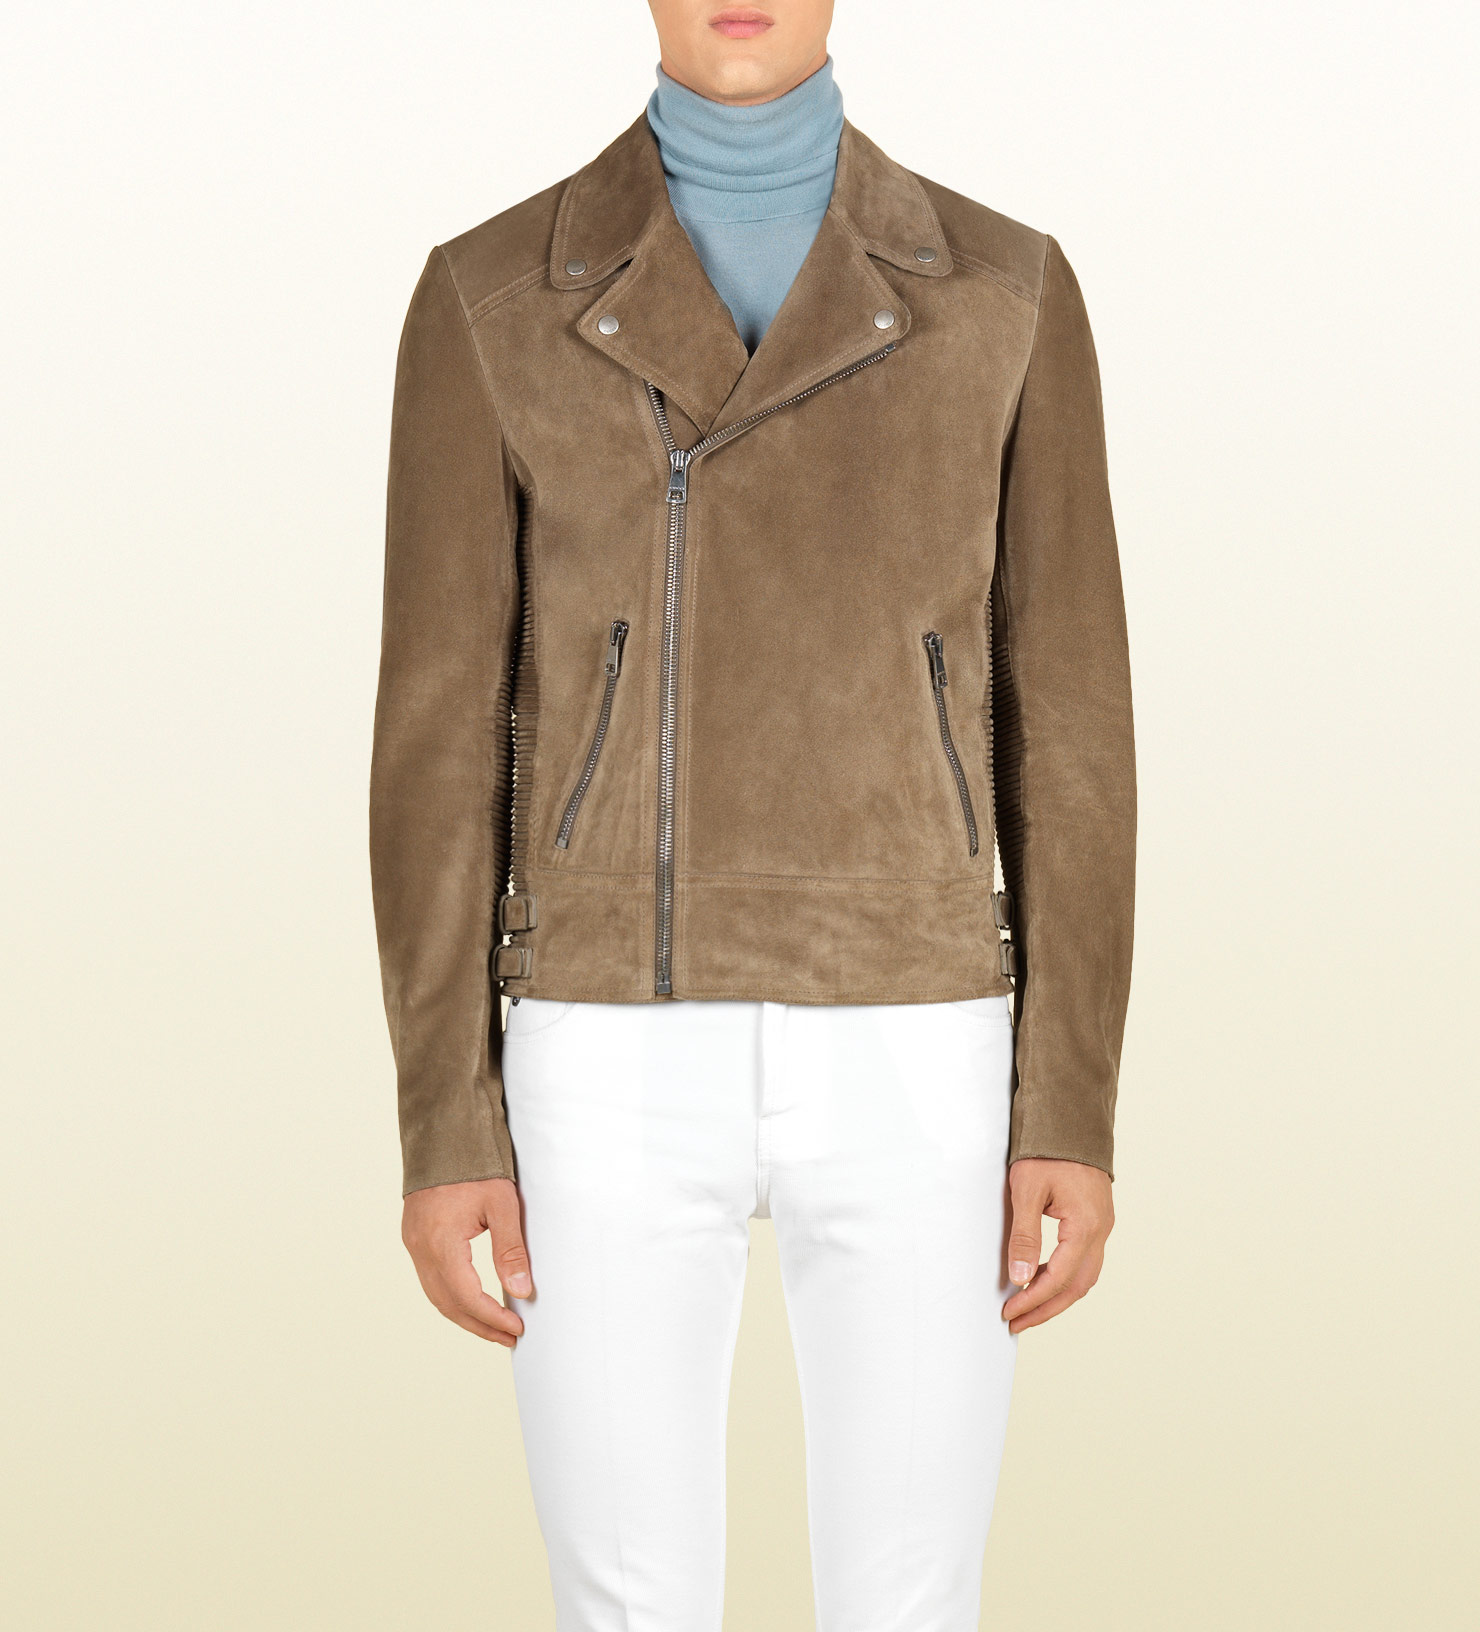 81280ea2aae5 Lyst - Gucci Suede Jacket in Natural for Men